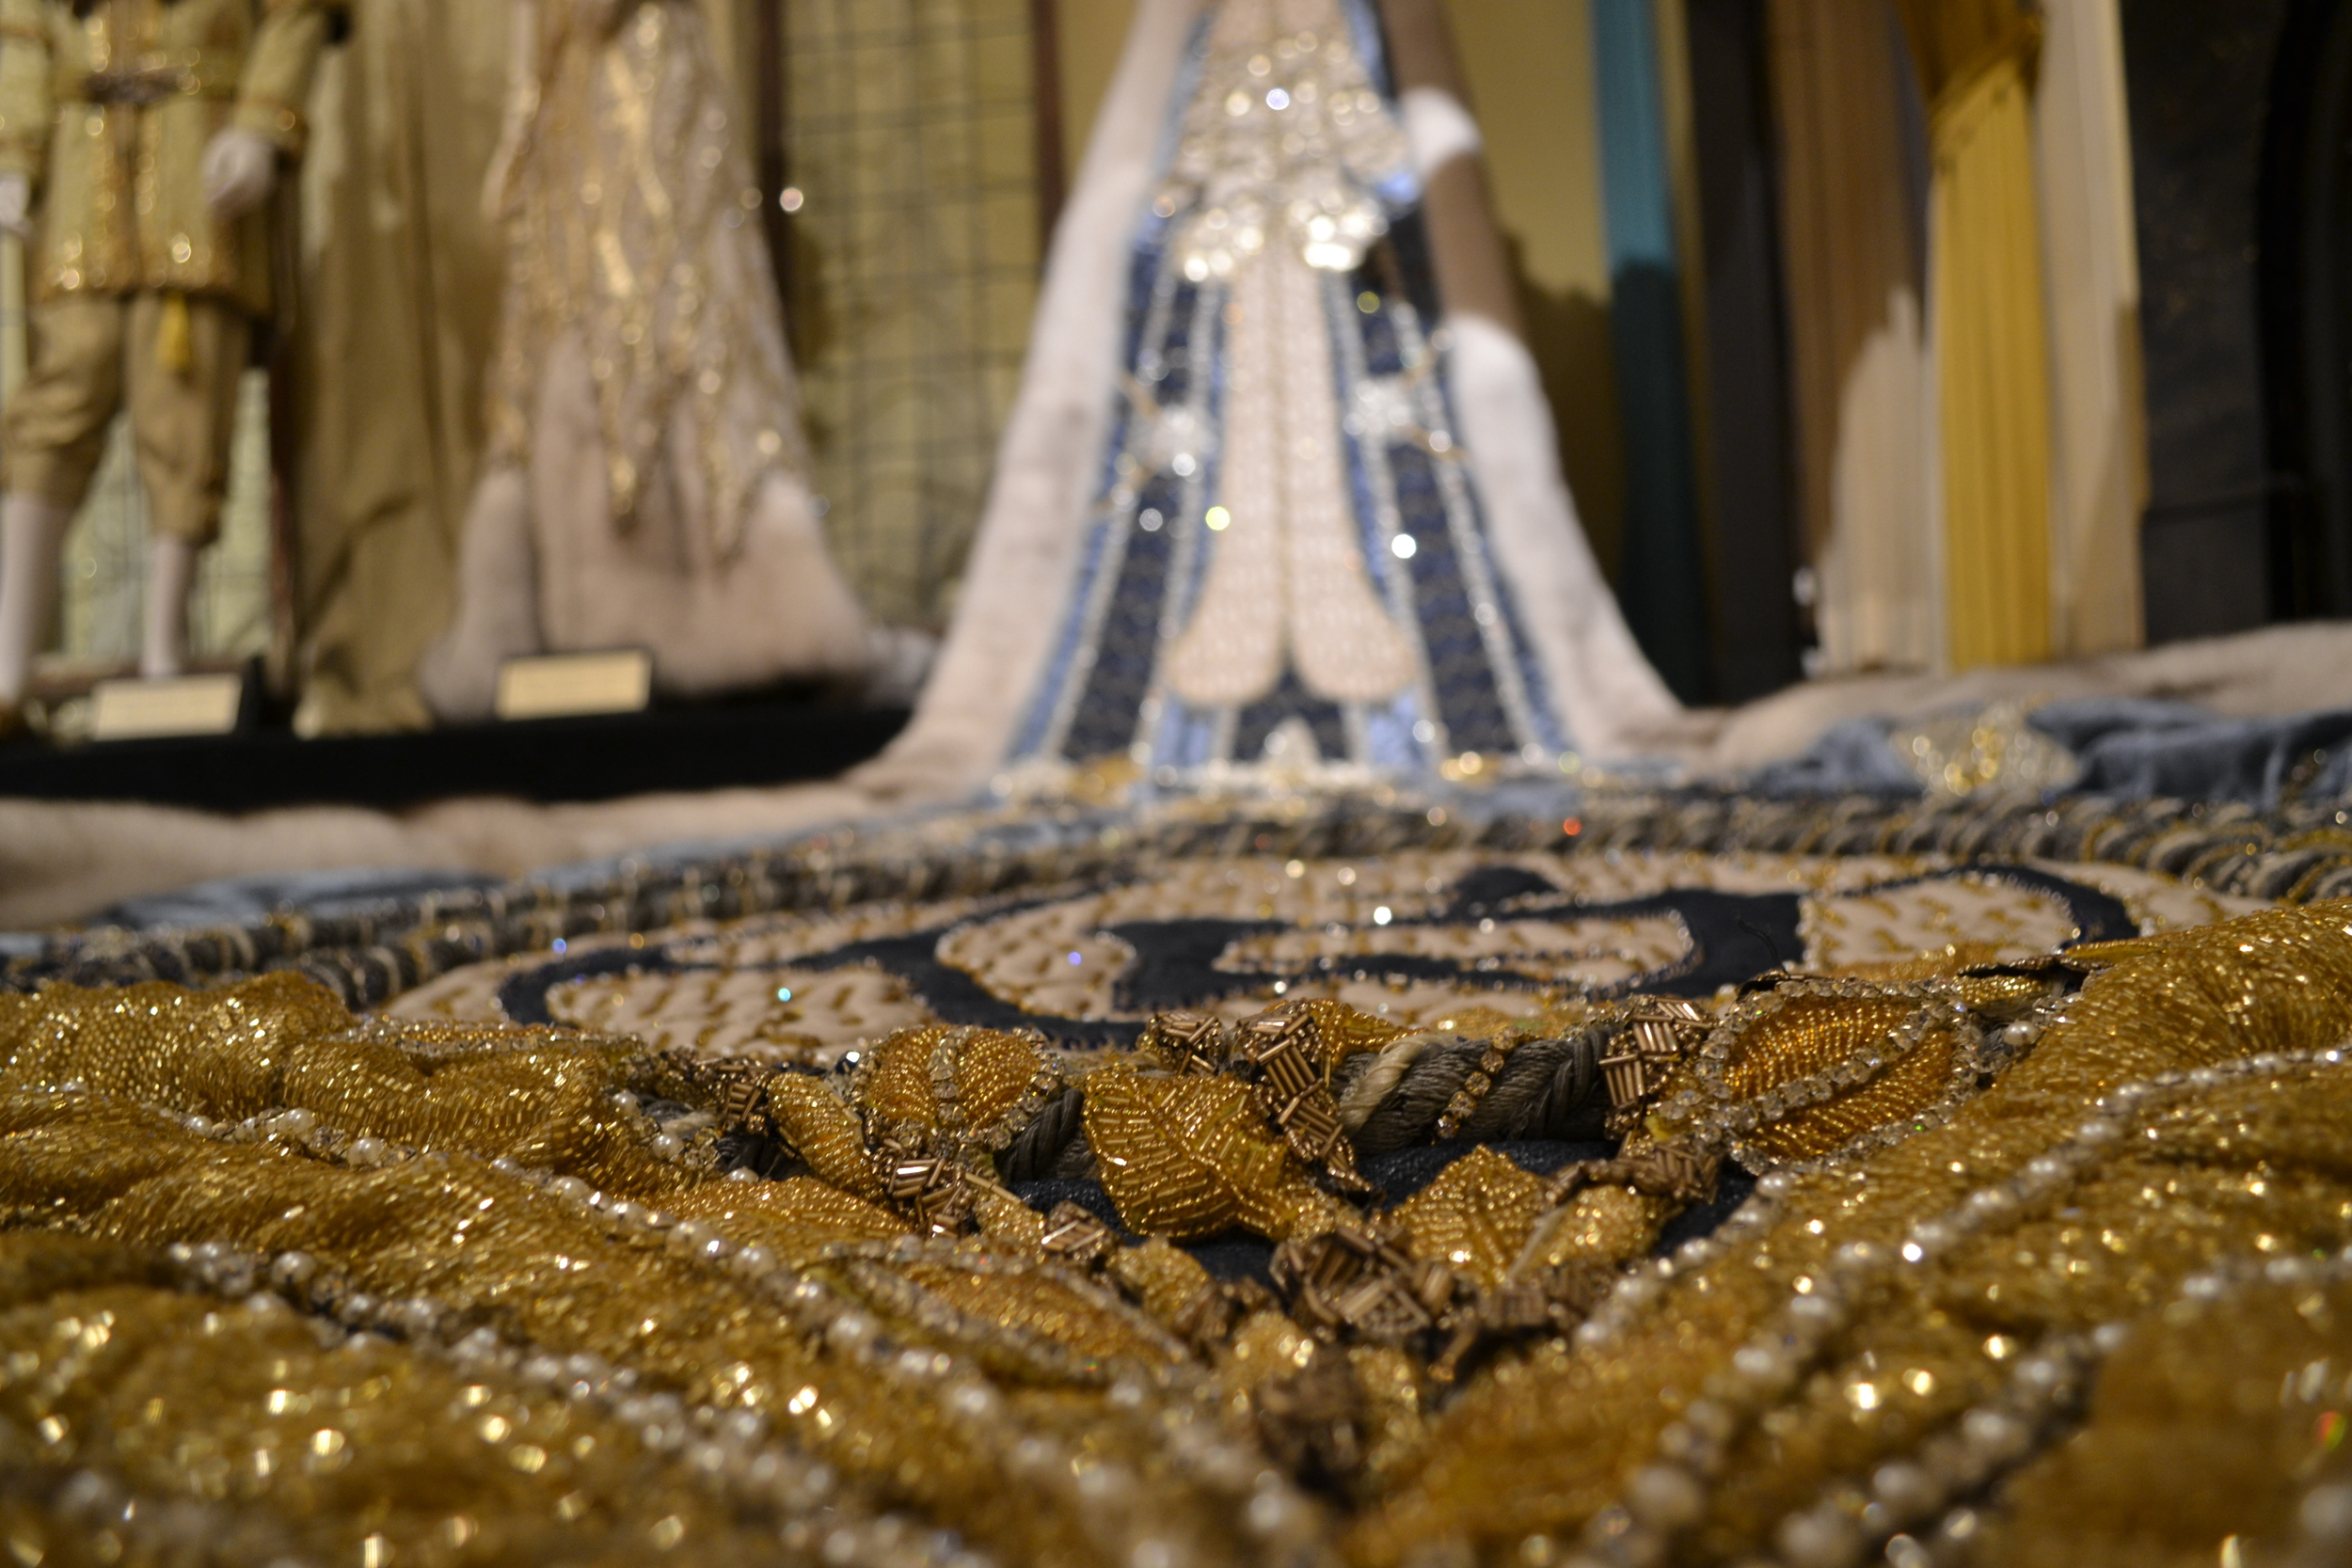 The Mardi Gras museum in Mobile was a sort of strange place. But it was hard not to admire some of the intricate beadwork on the King and Queen gowns of Mardis Gras past.